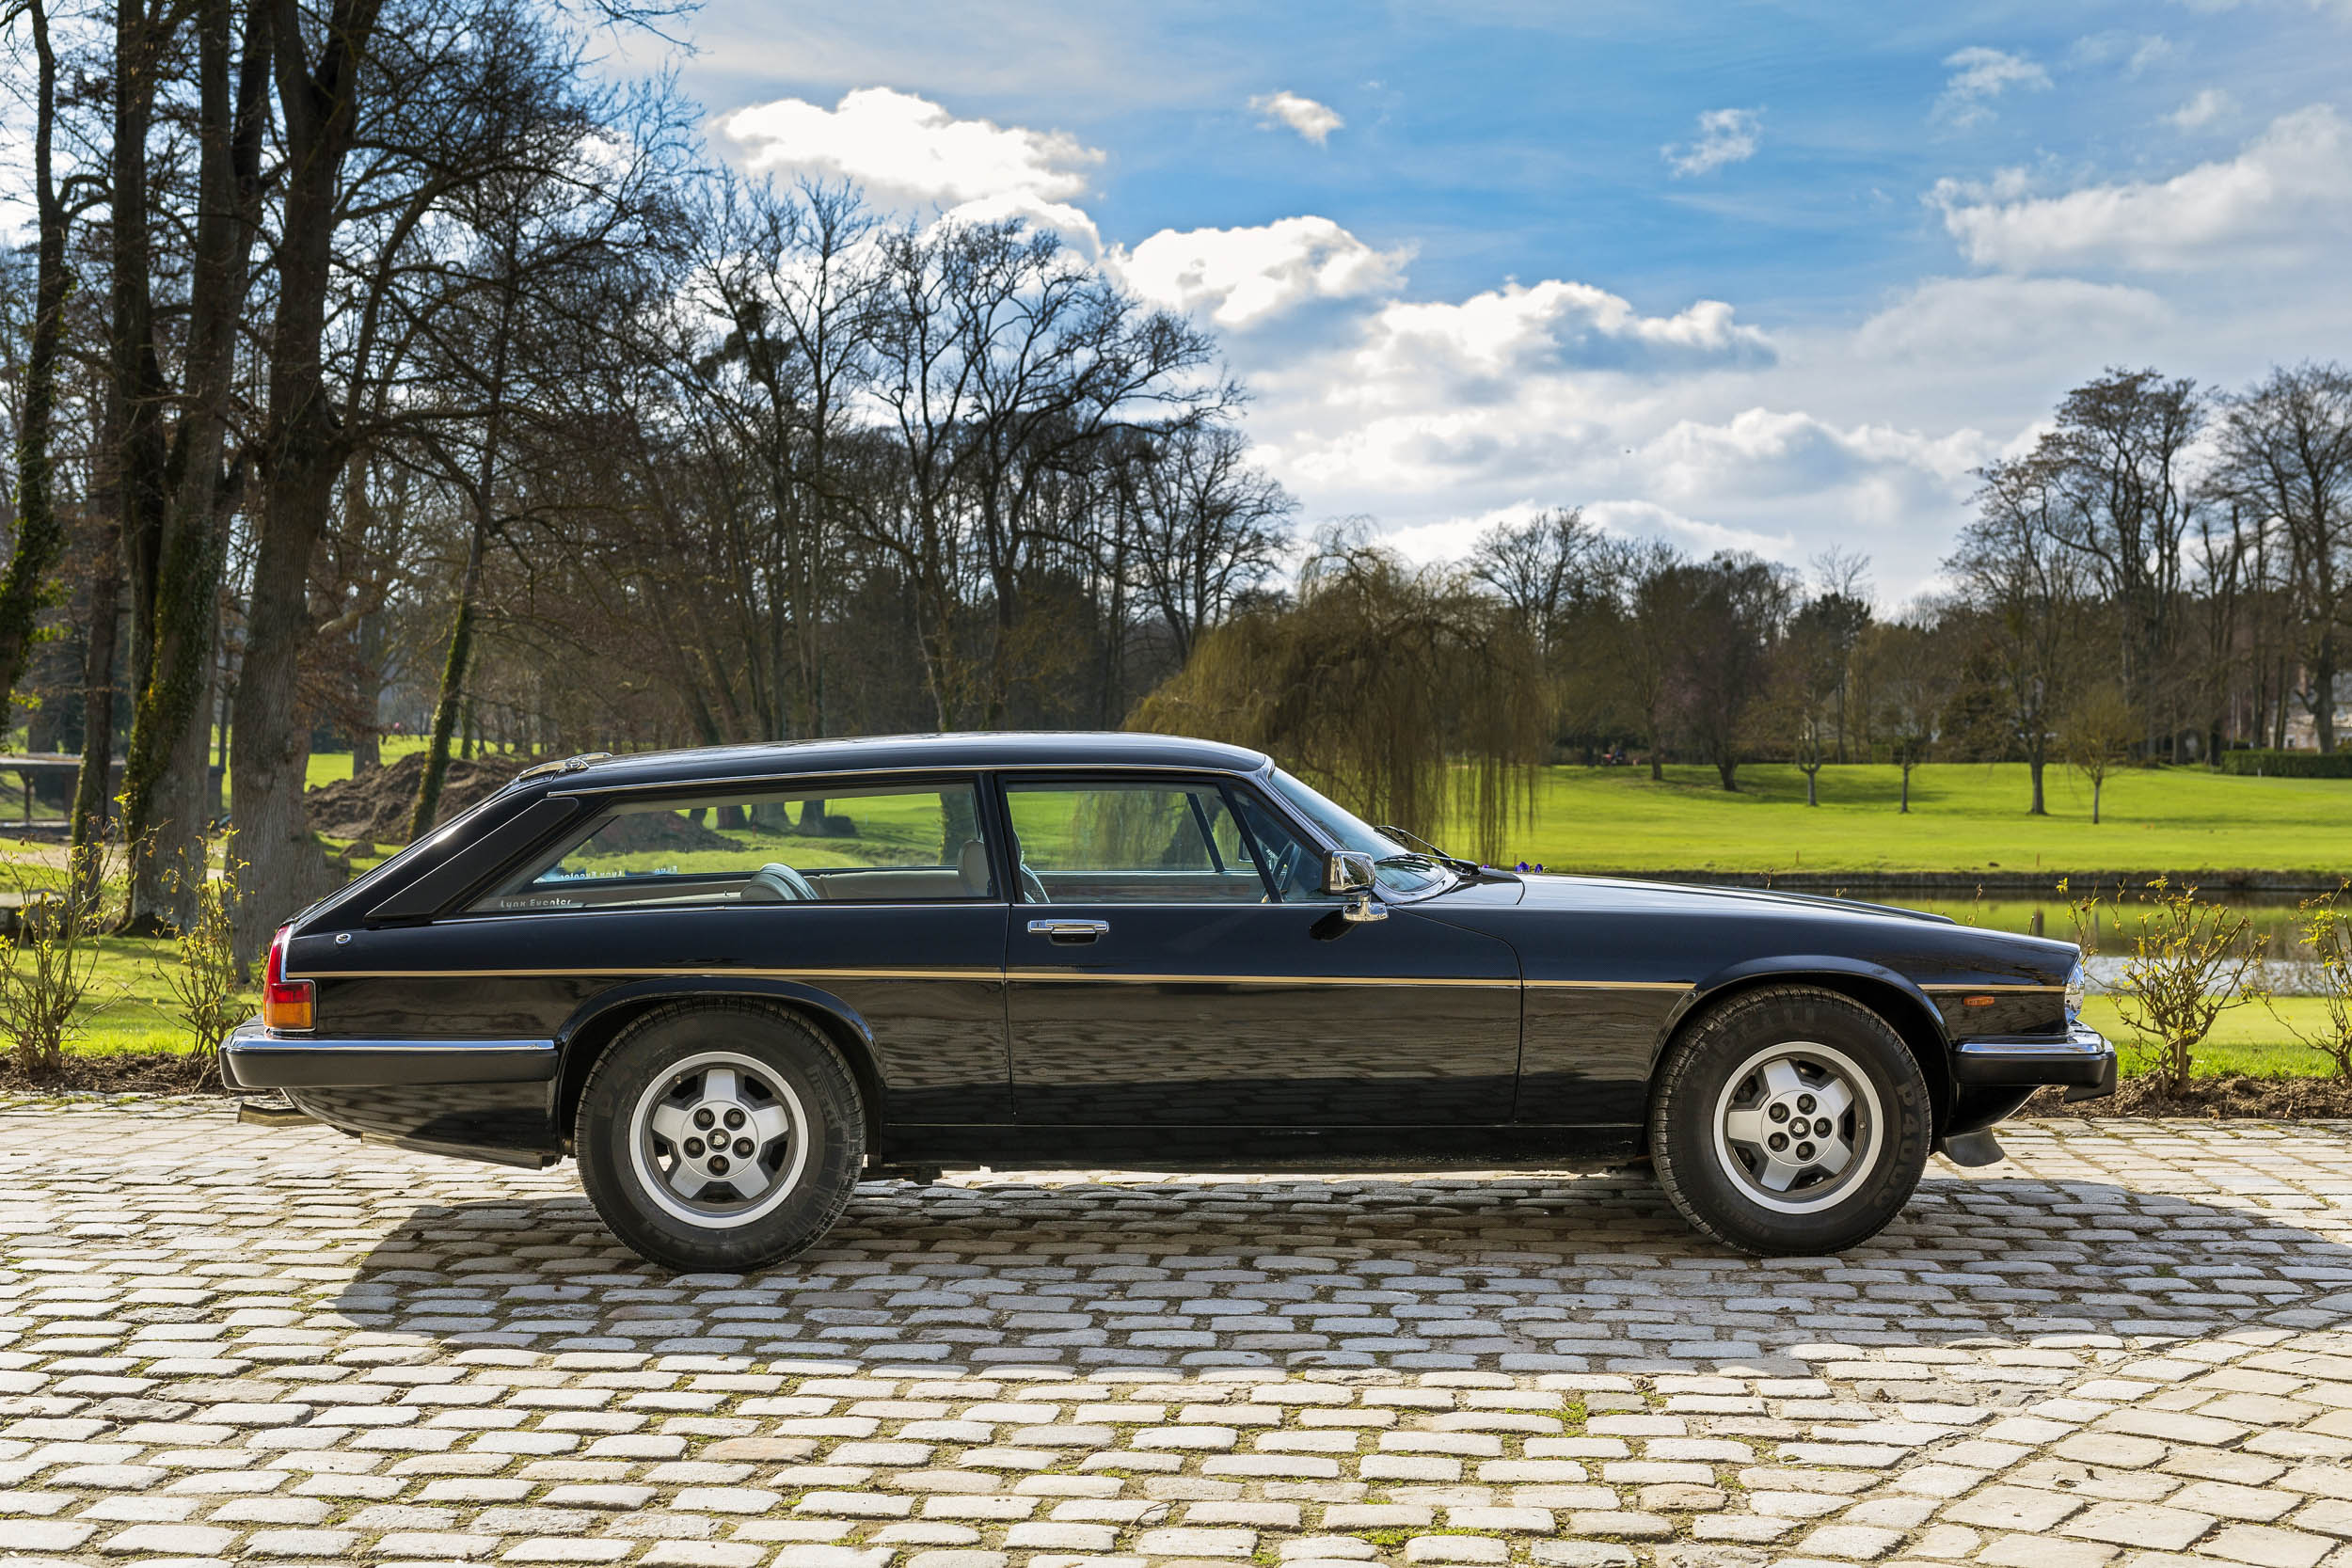 1984 Jaguar XJ-S V12 Lynx Eventer profile